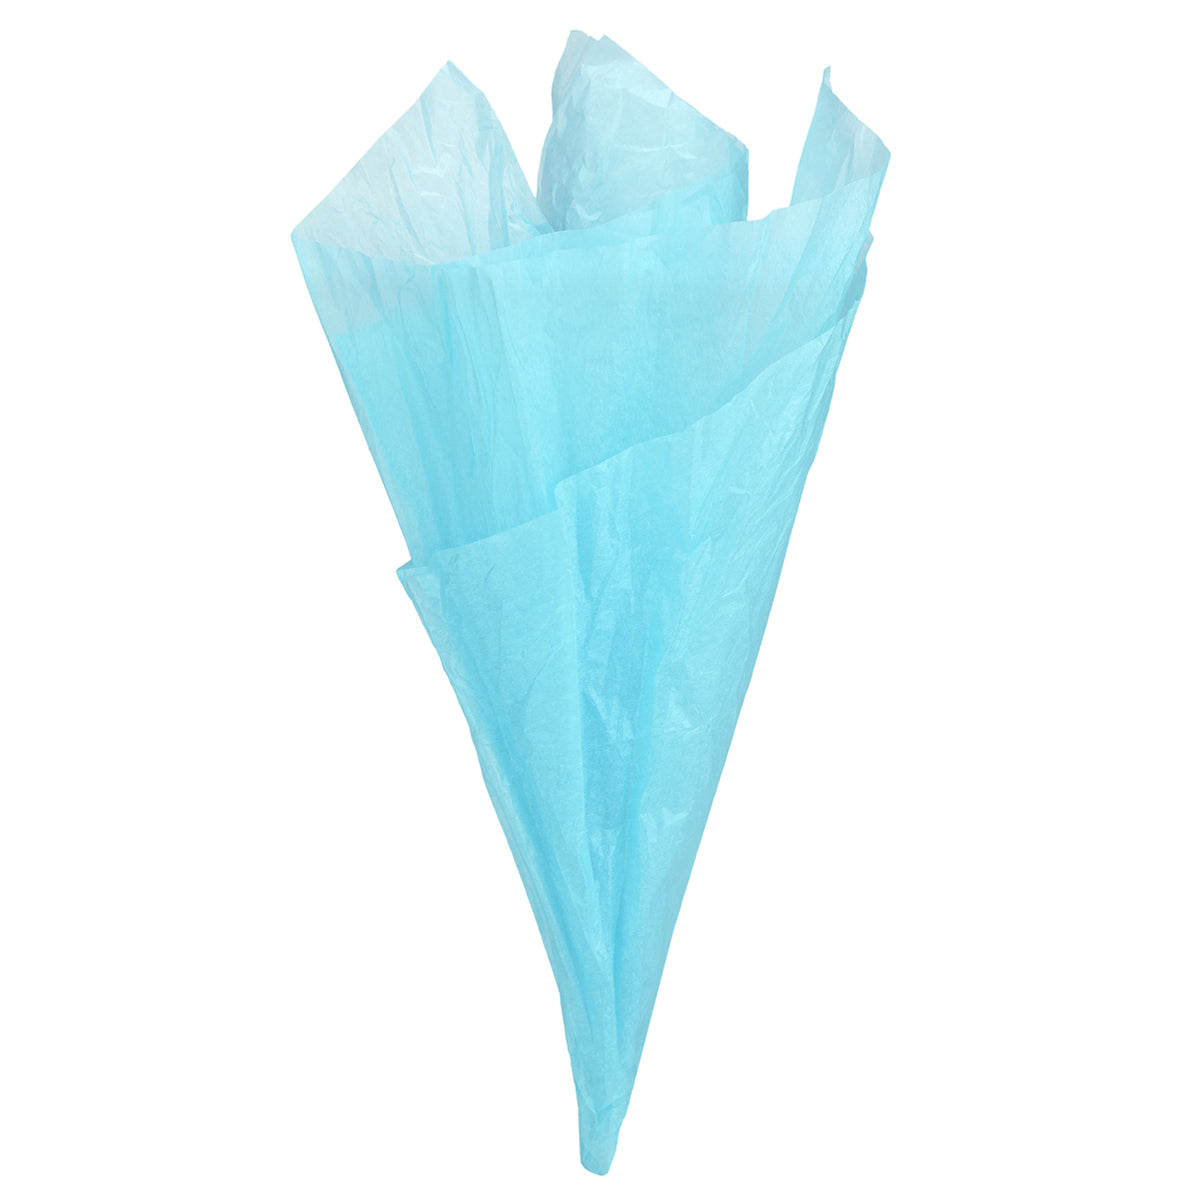 Displaying of a light blue tissue paper in ice cream cone shape